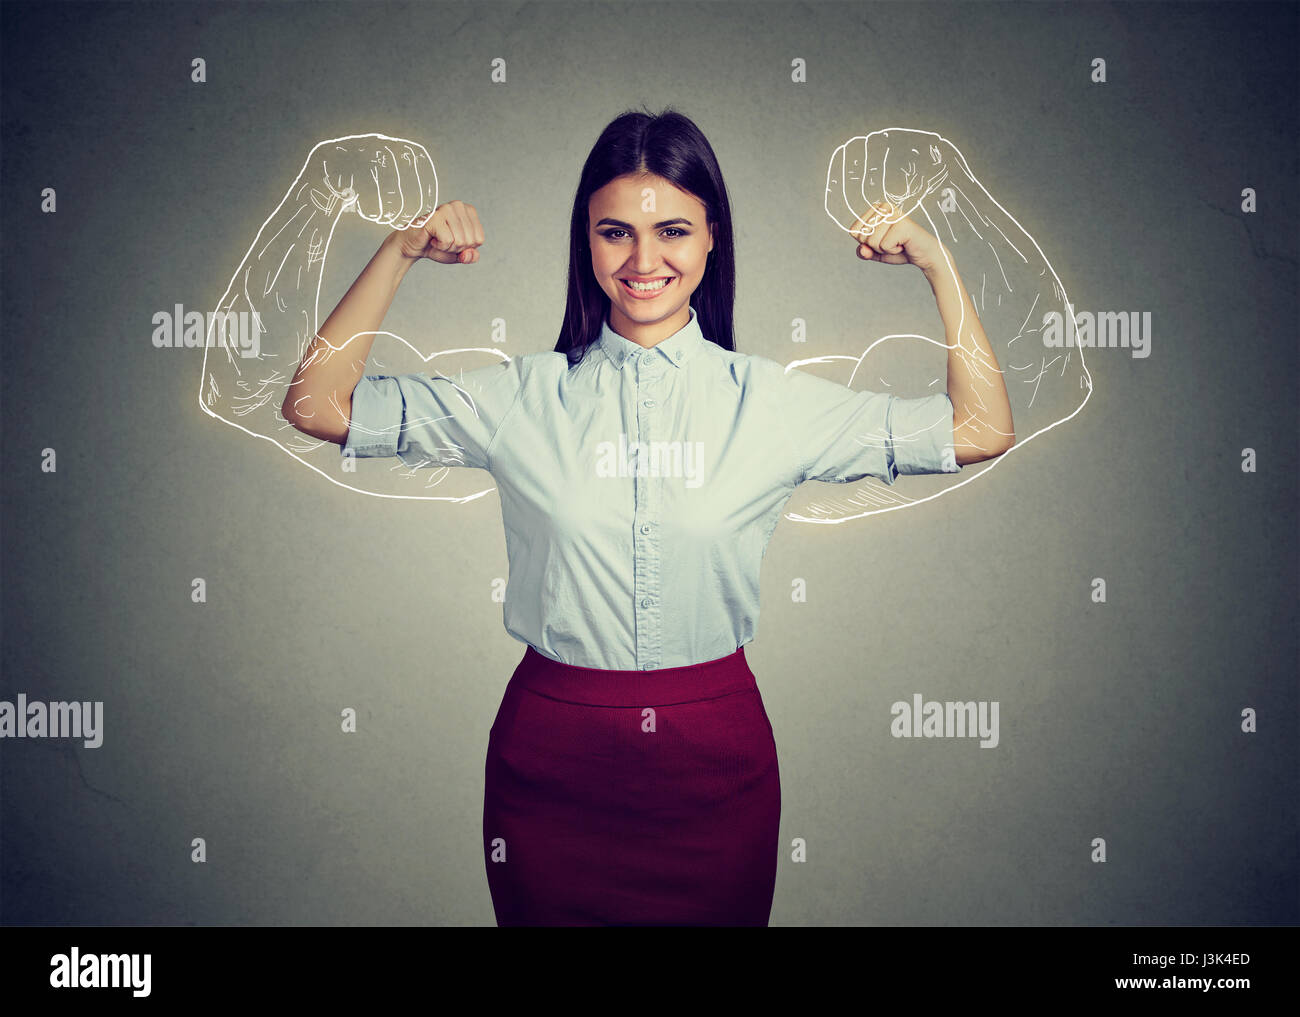 Powerful confident woman flexing her muscles isolated on gray wall background. Human face expressions, emotions - Stock Image